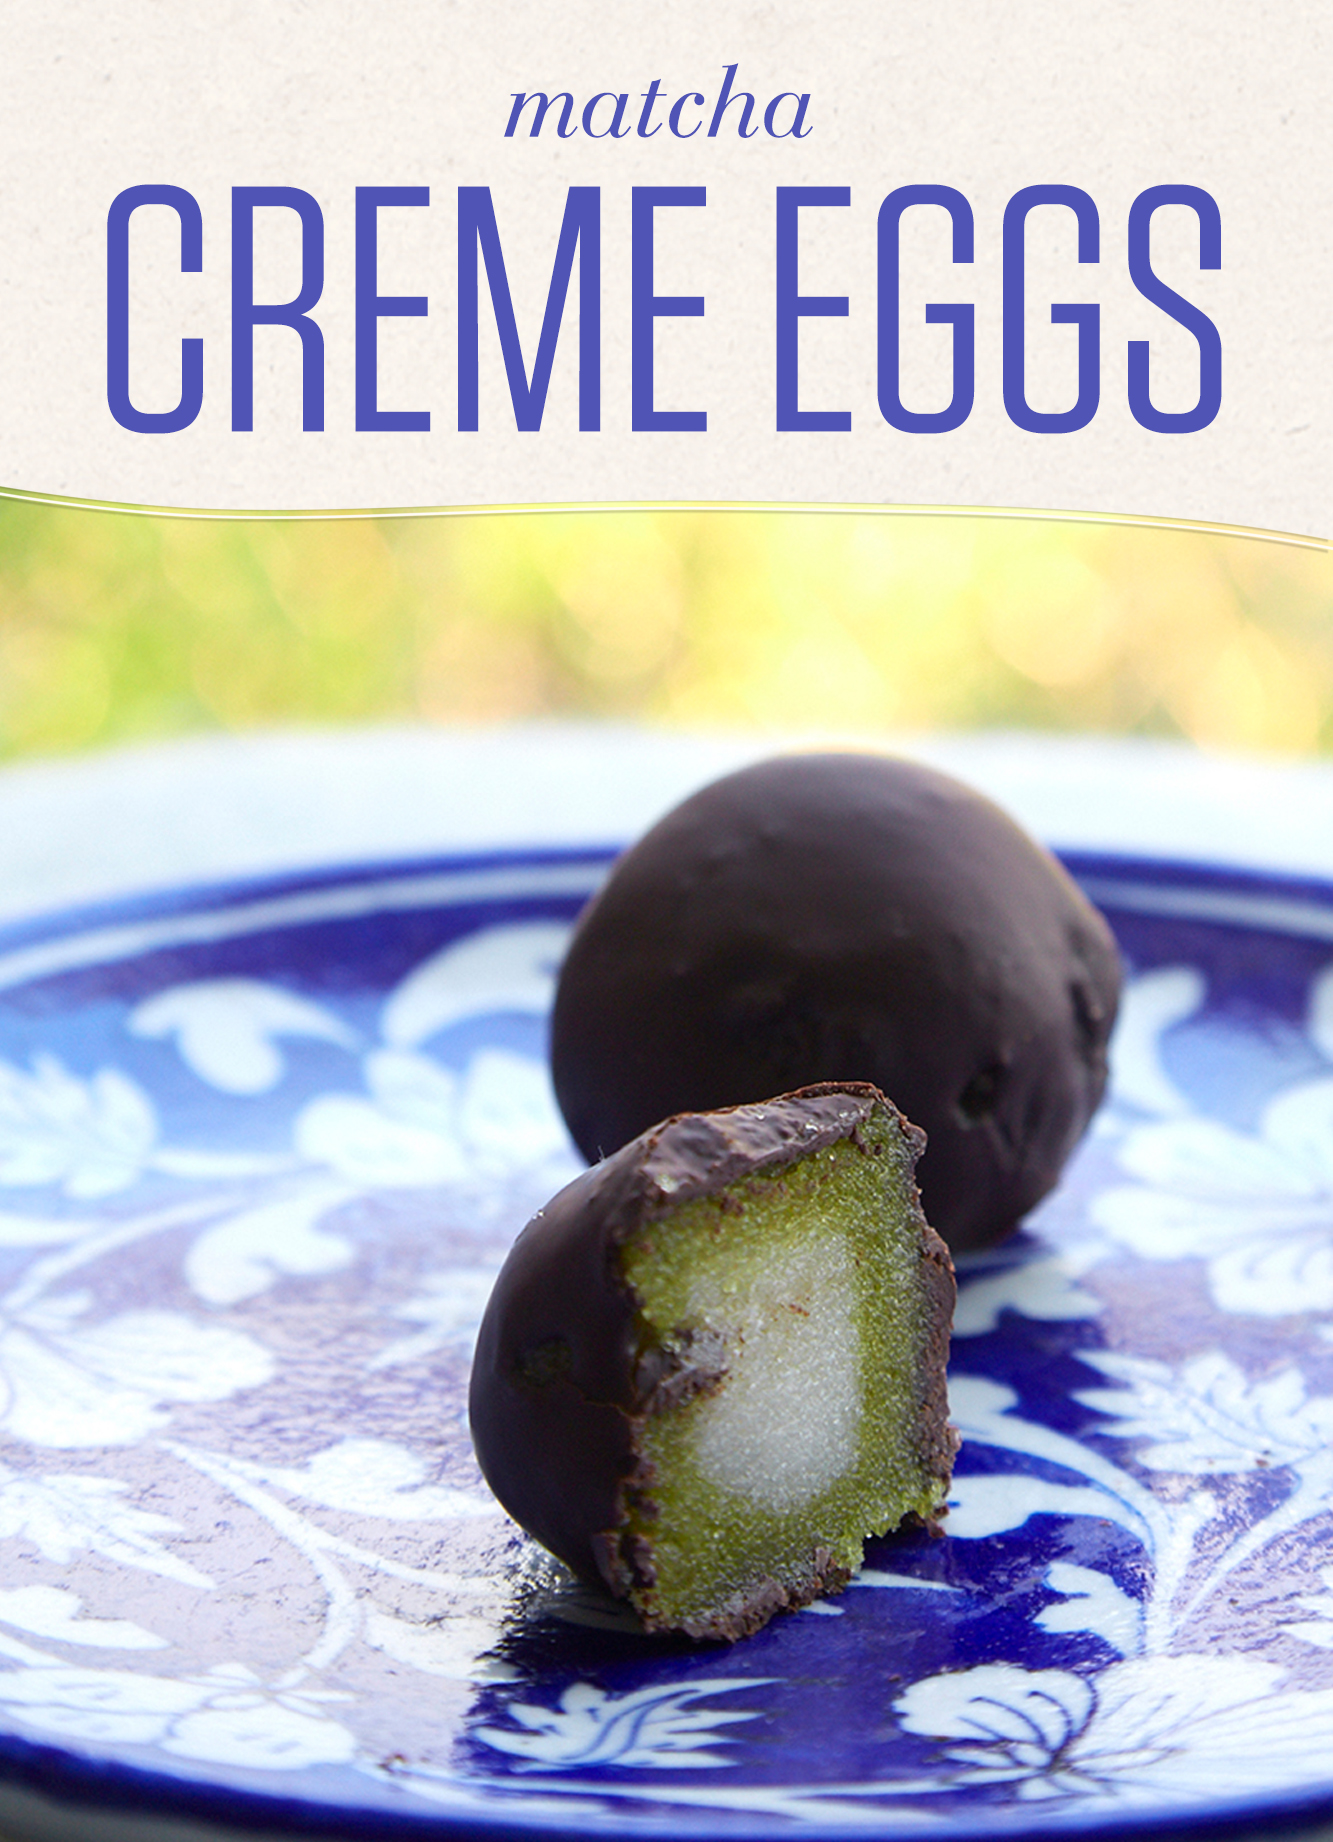 Cadbury Creme Eggs are a Spring classic. Try this ethically-conscious version with Fair Trade chocolate, antioxidant-rich matcha and no trace of palm oil.